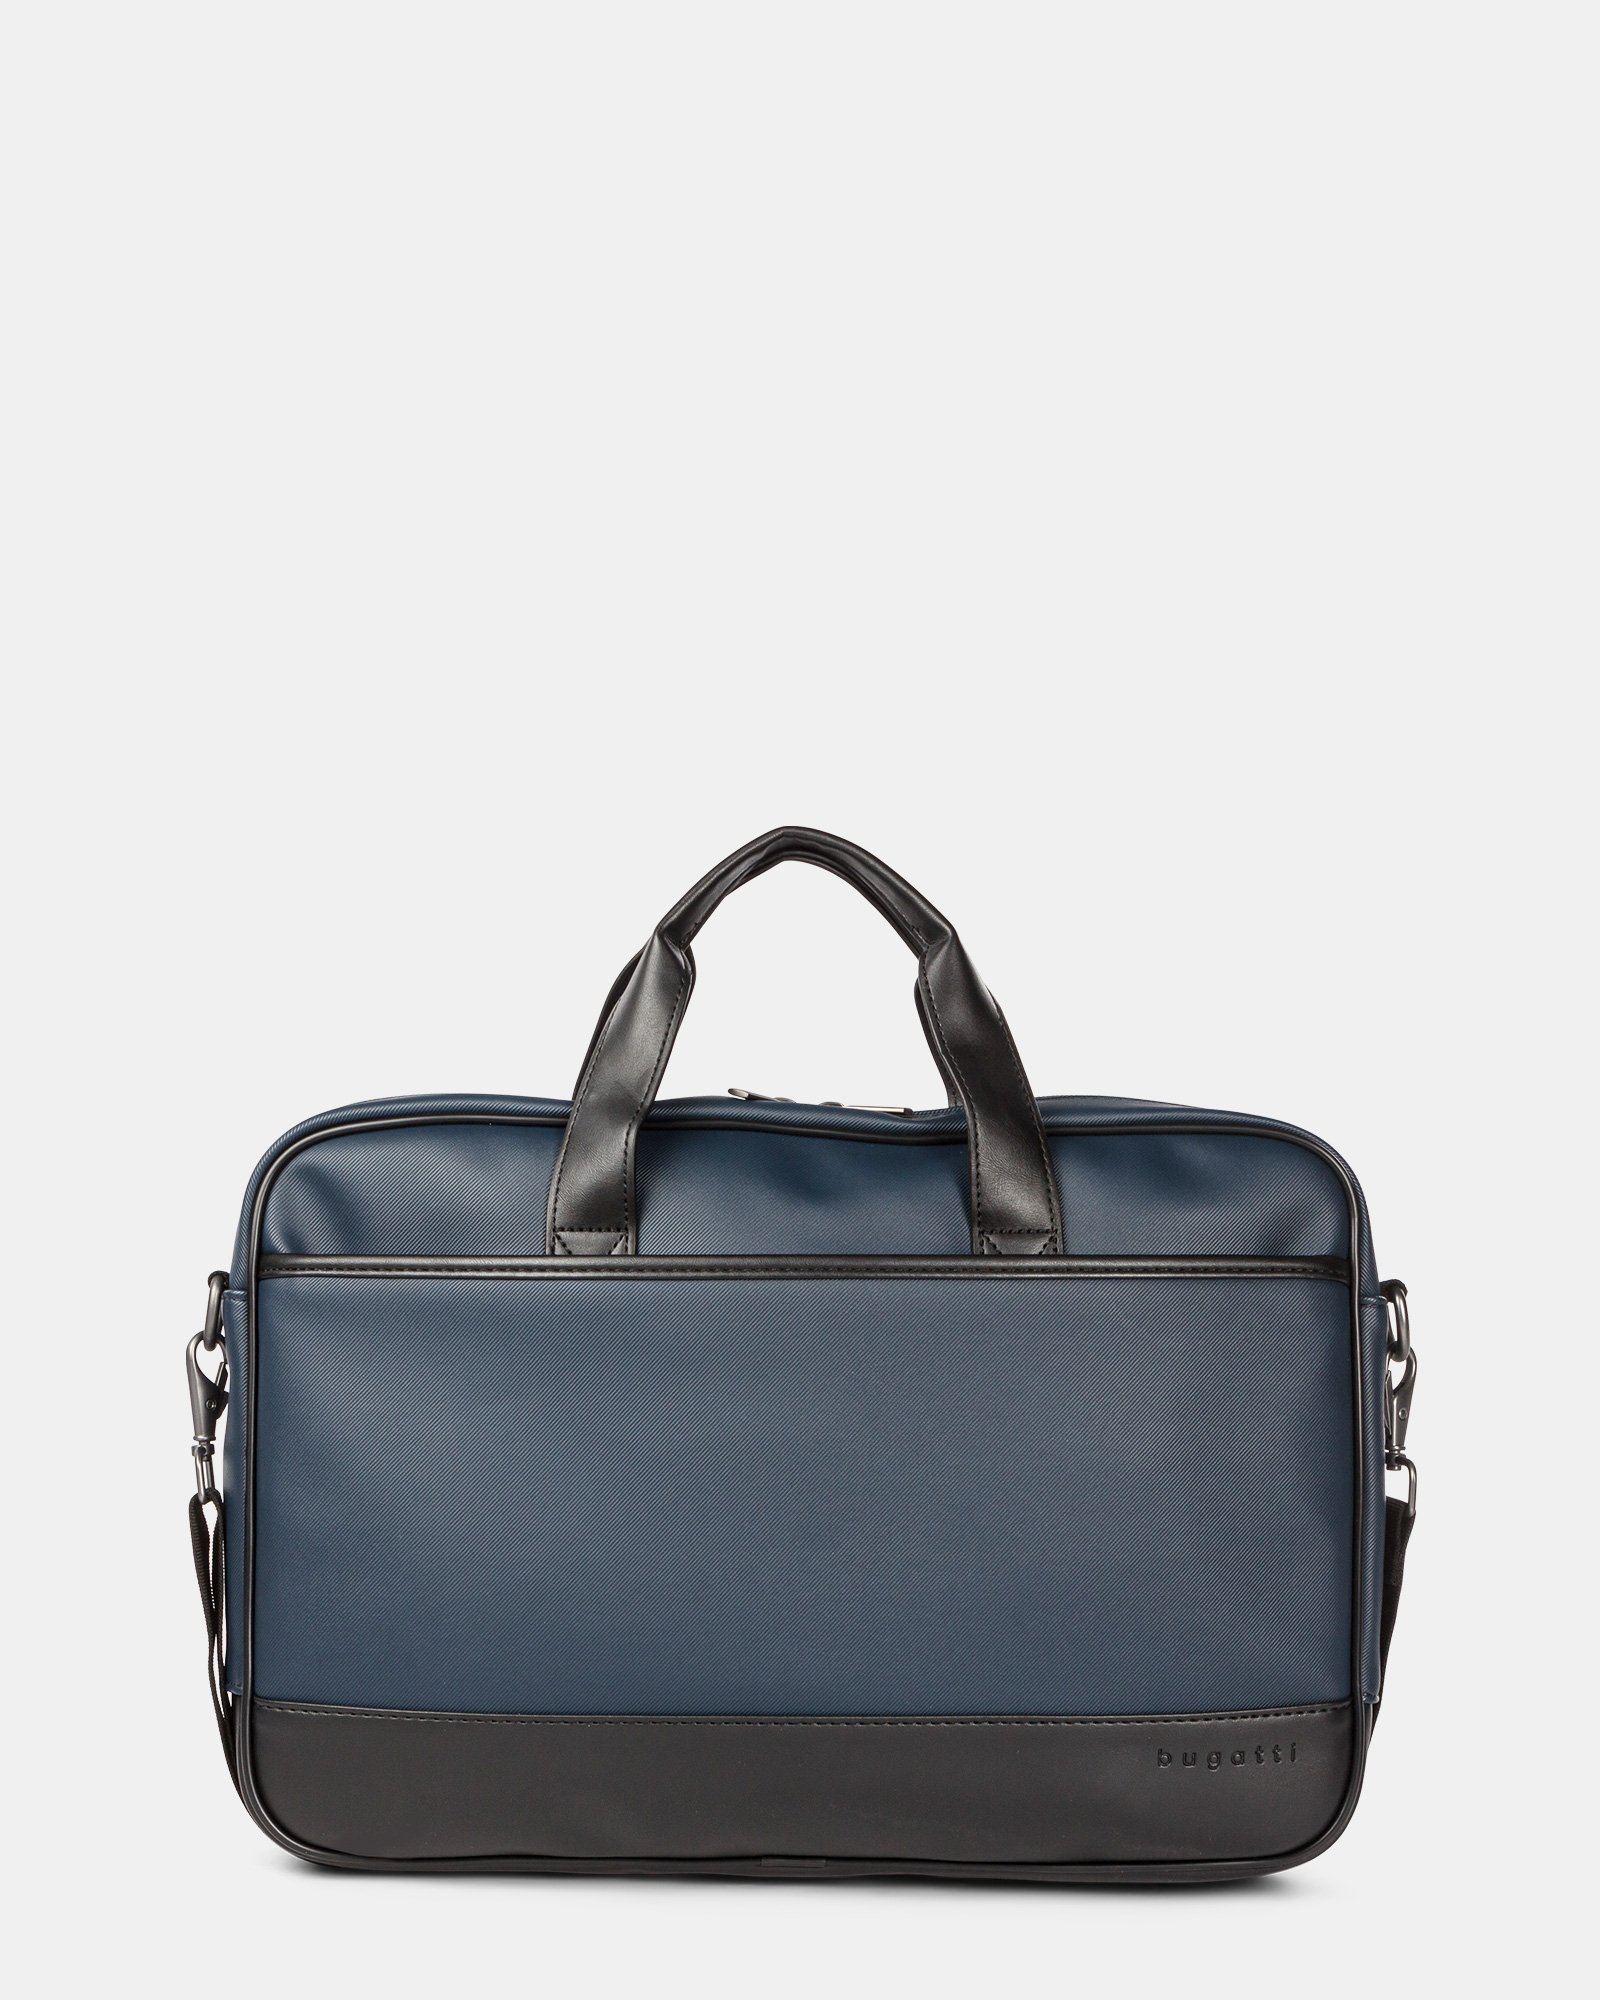 Gin & Twill - Briefcase for 15.6 in laptop with Main top zipper closure - Navy - Bugatti - Zoom